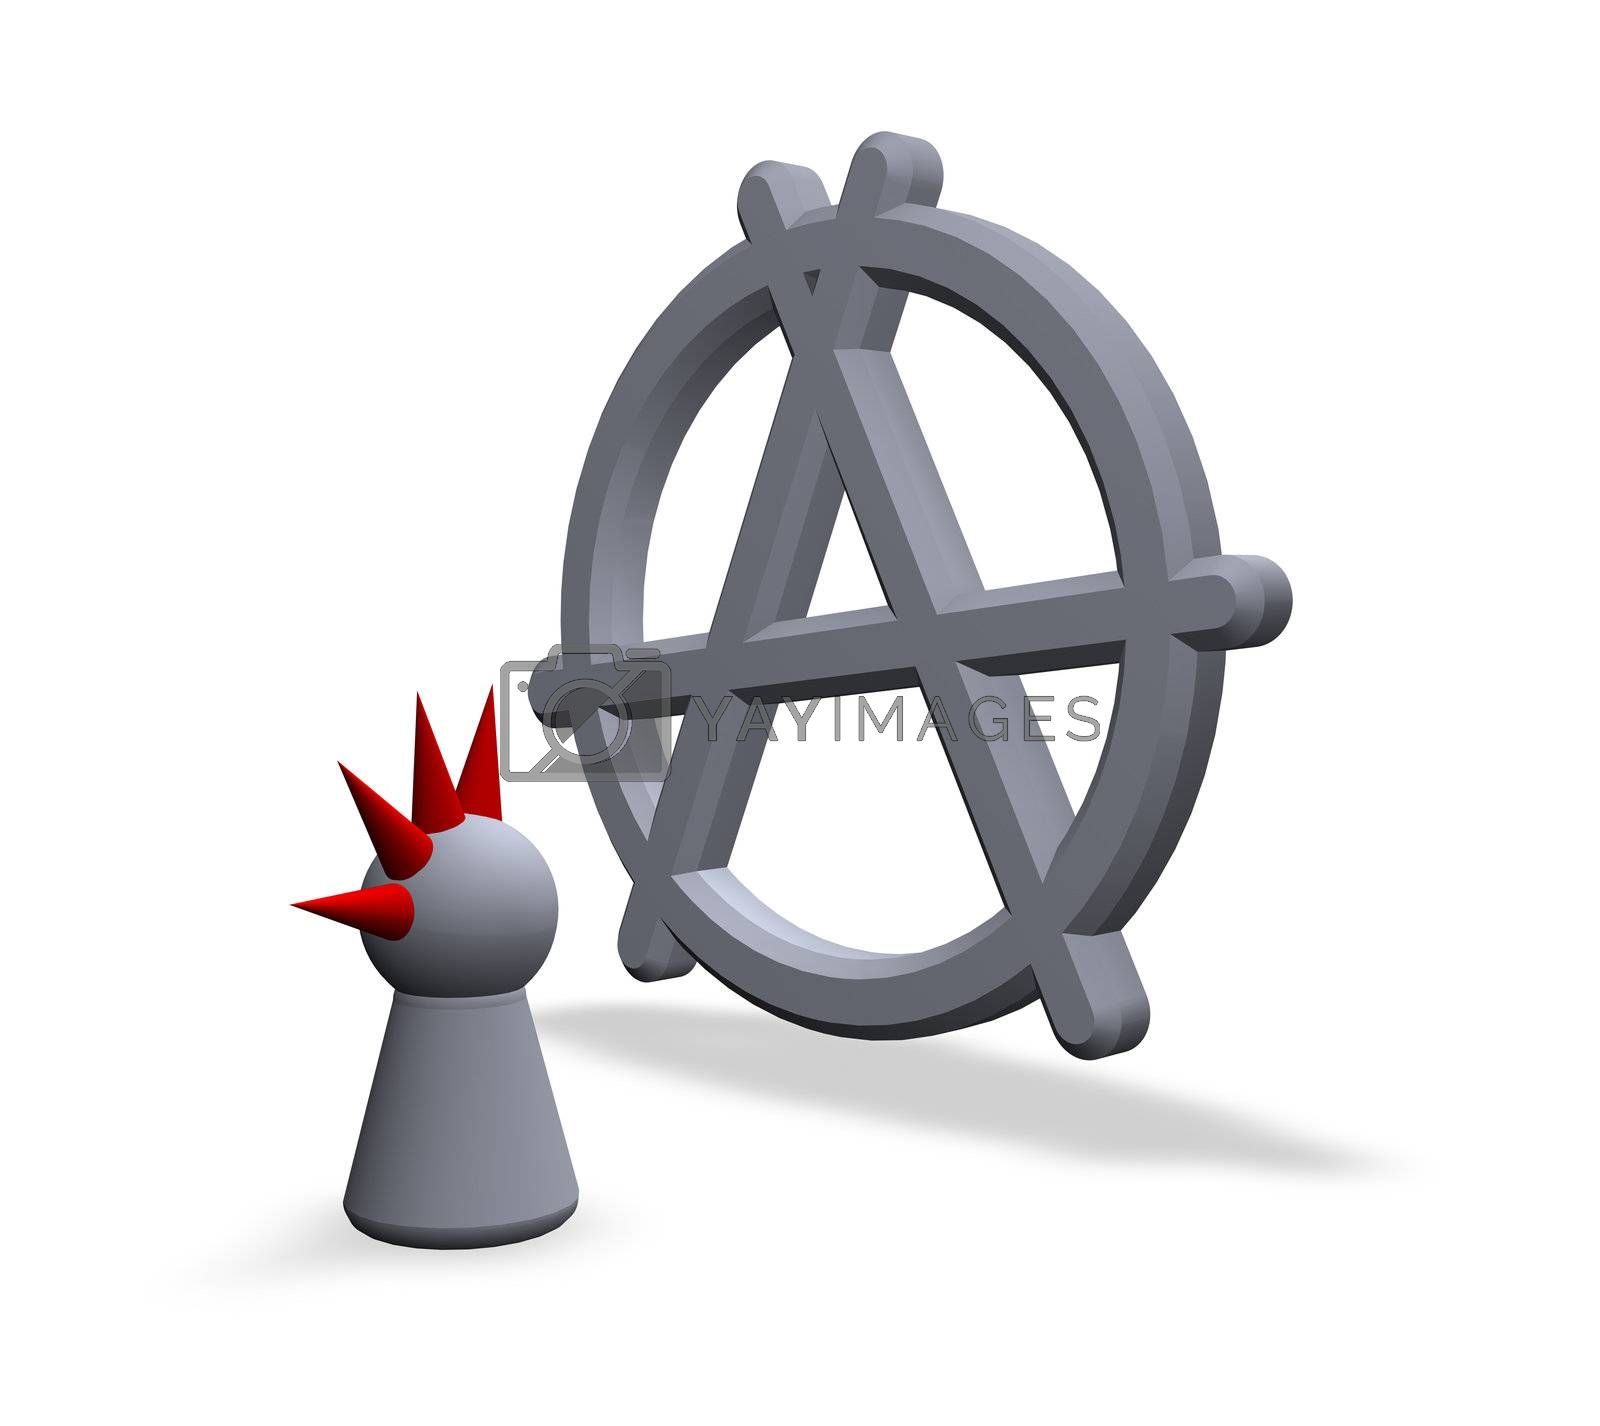 anarchy symbol in 3d and play figure punk wit red hair